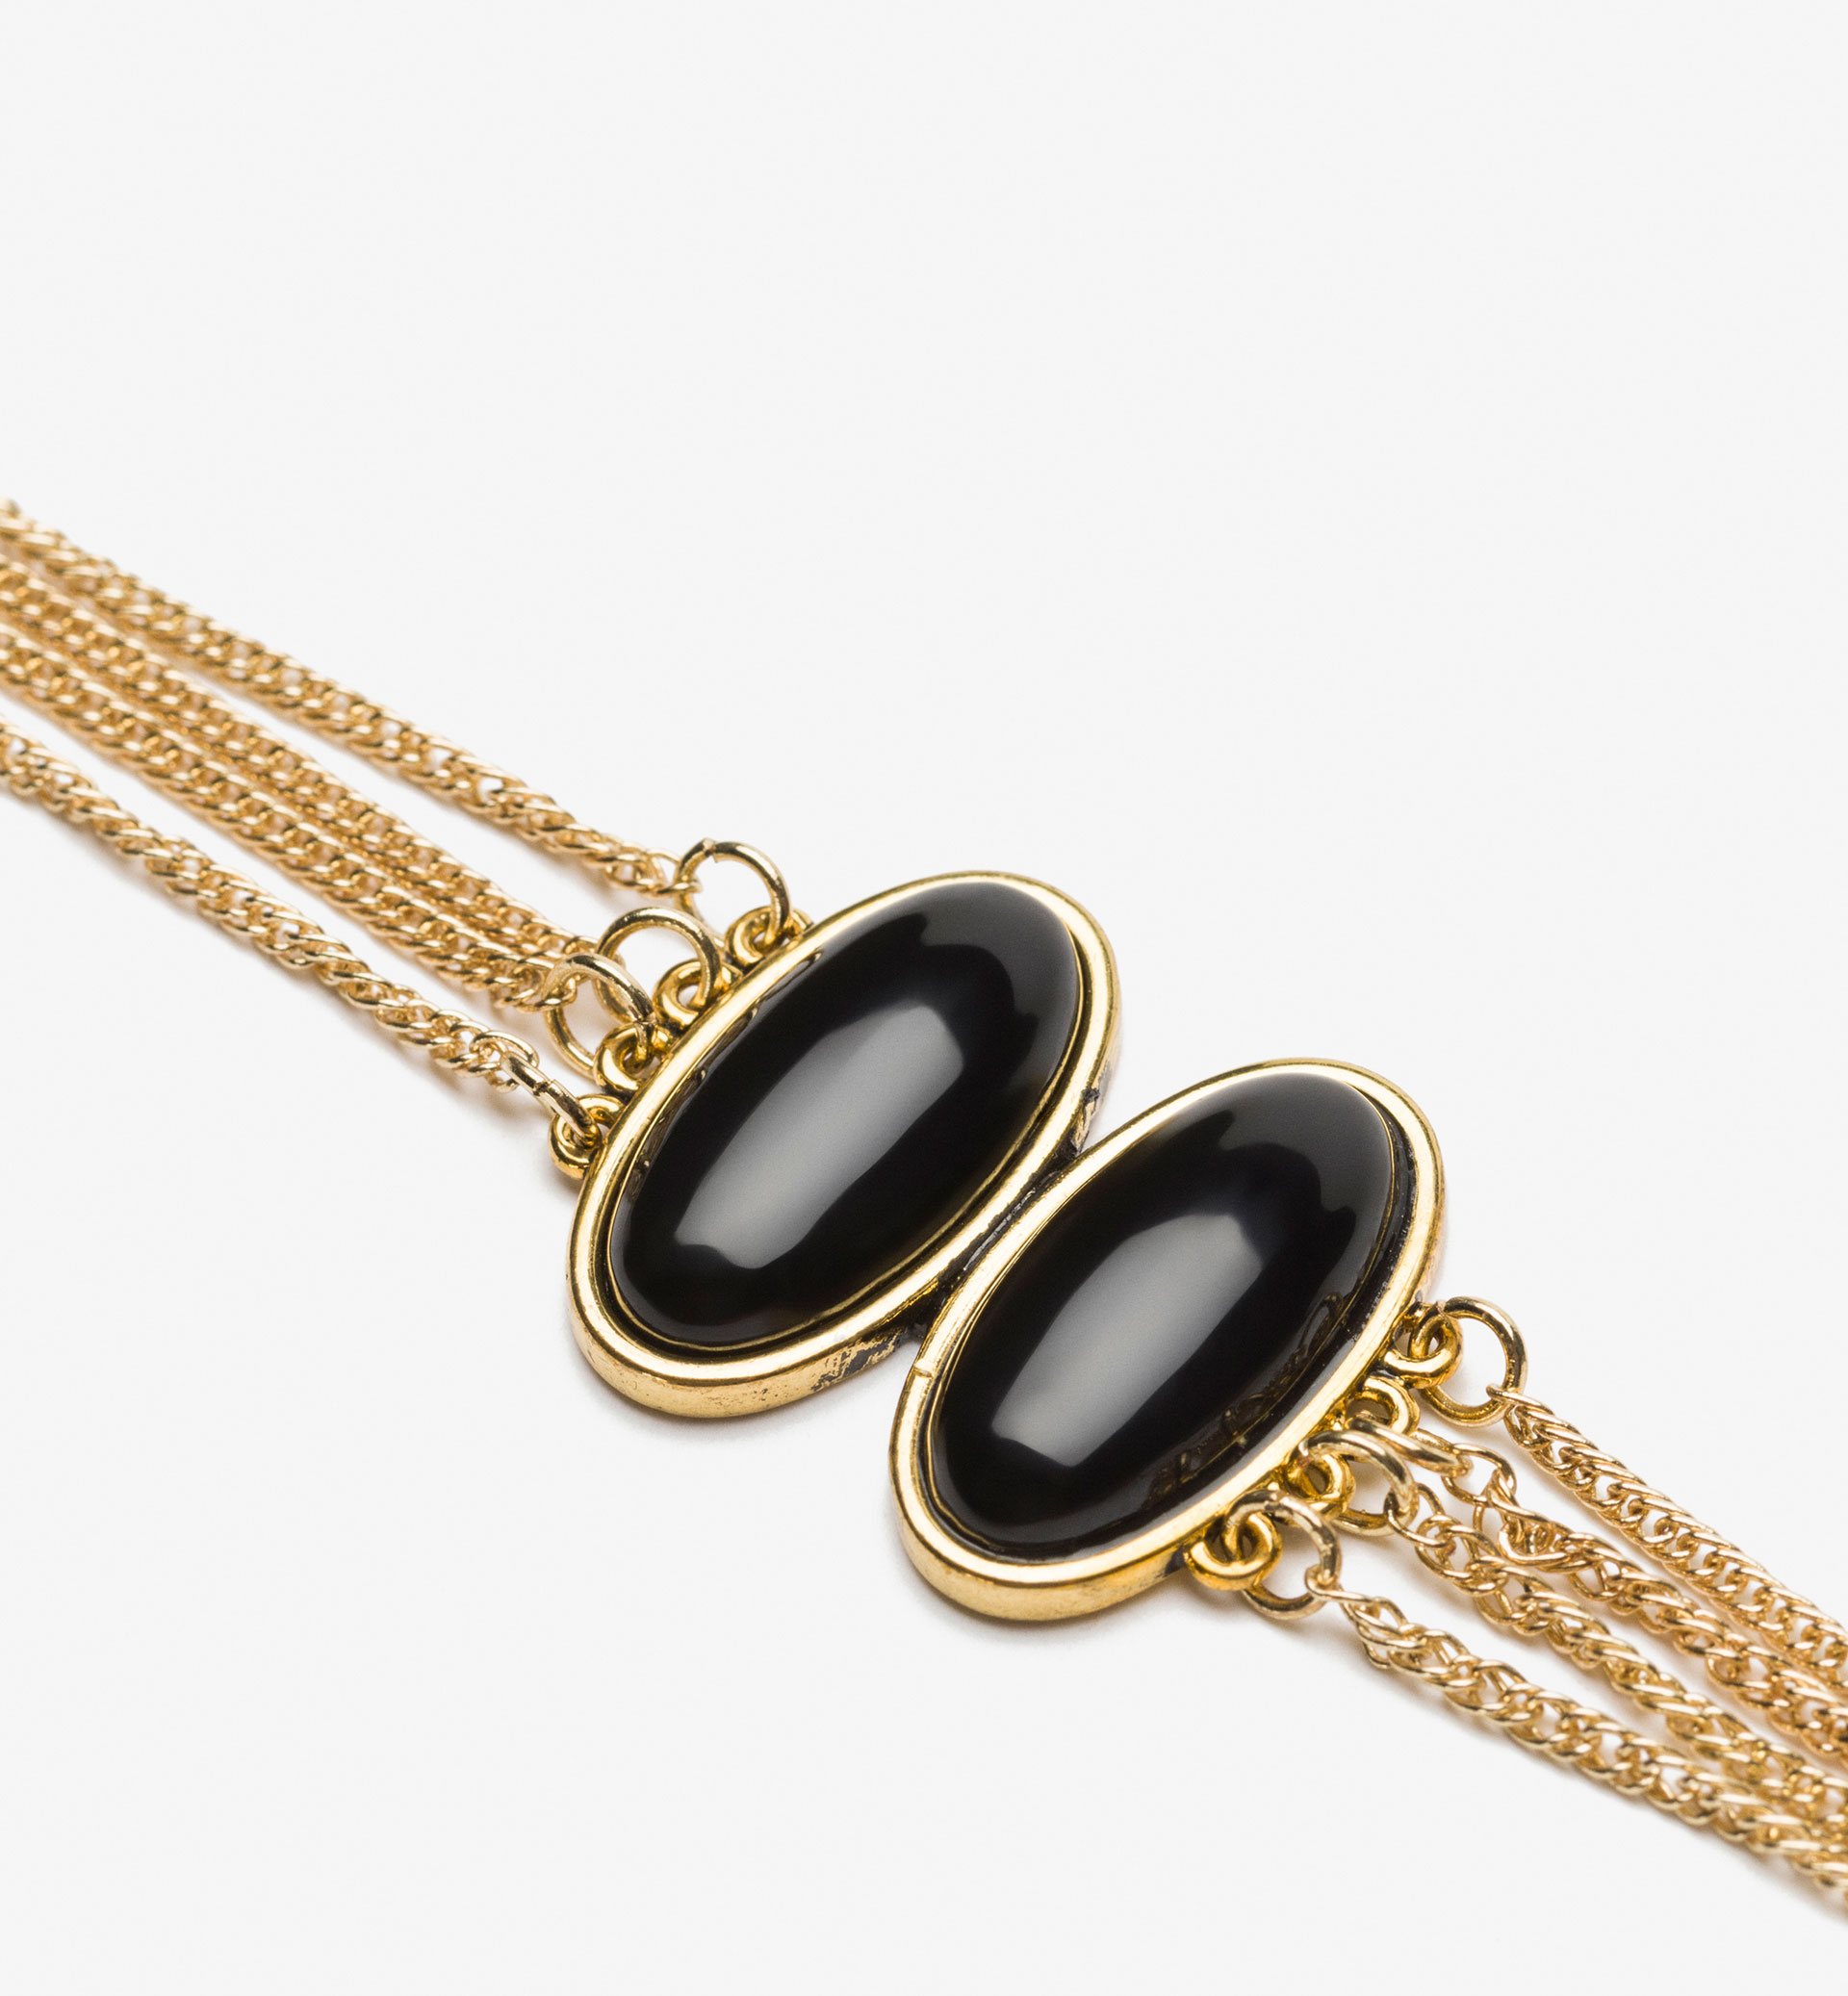 BRACELET WITH BLACK STONES DETAIL